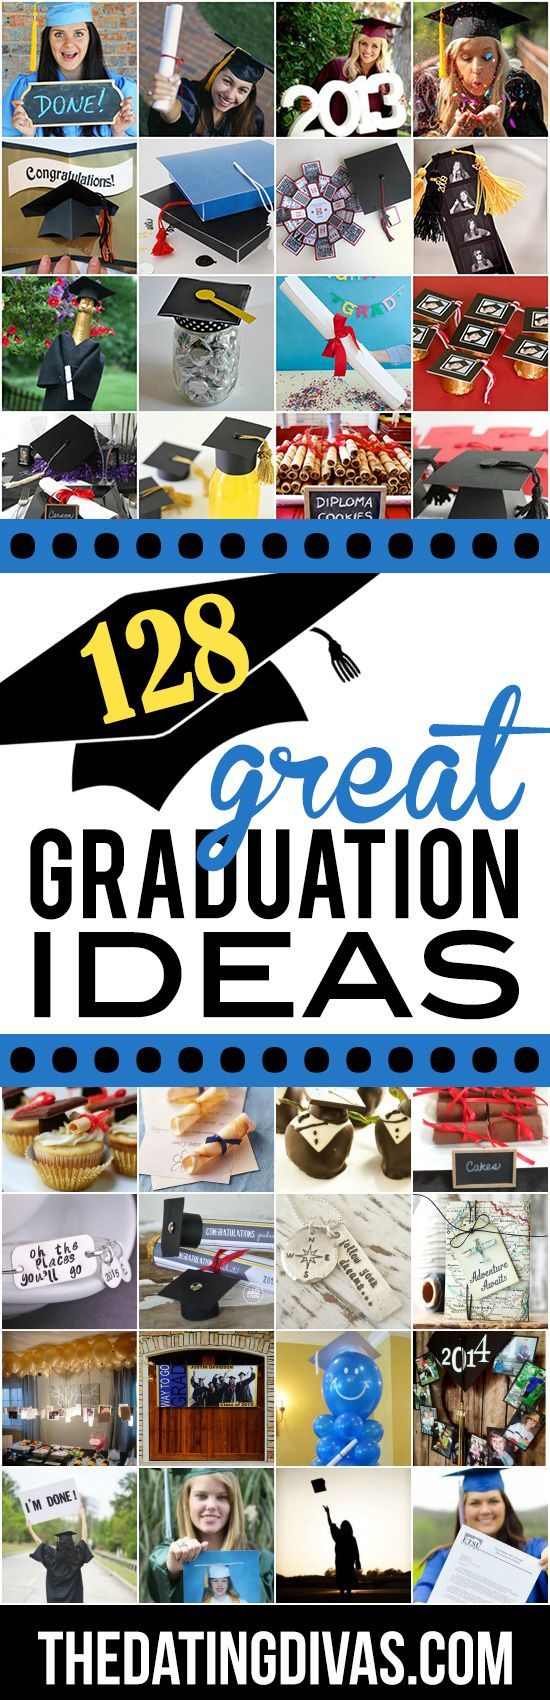 TONS of great graduation ideas- everything from graduation cards and grad gifts to graduation parties and pictures. www.TheDatingDivas.com